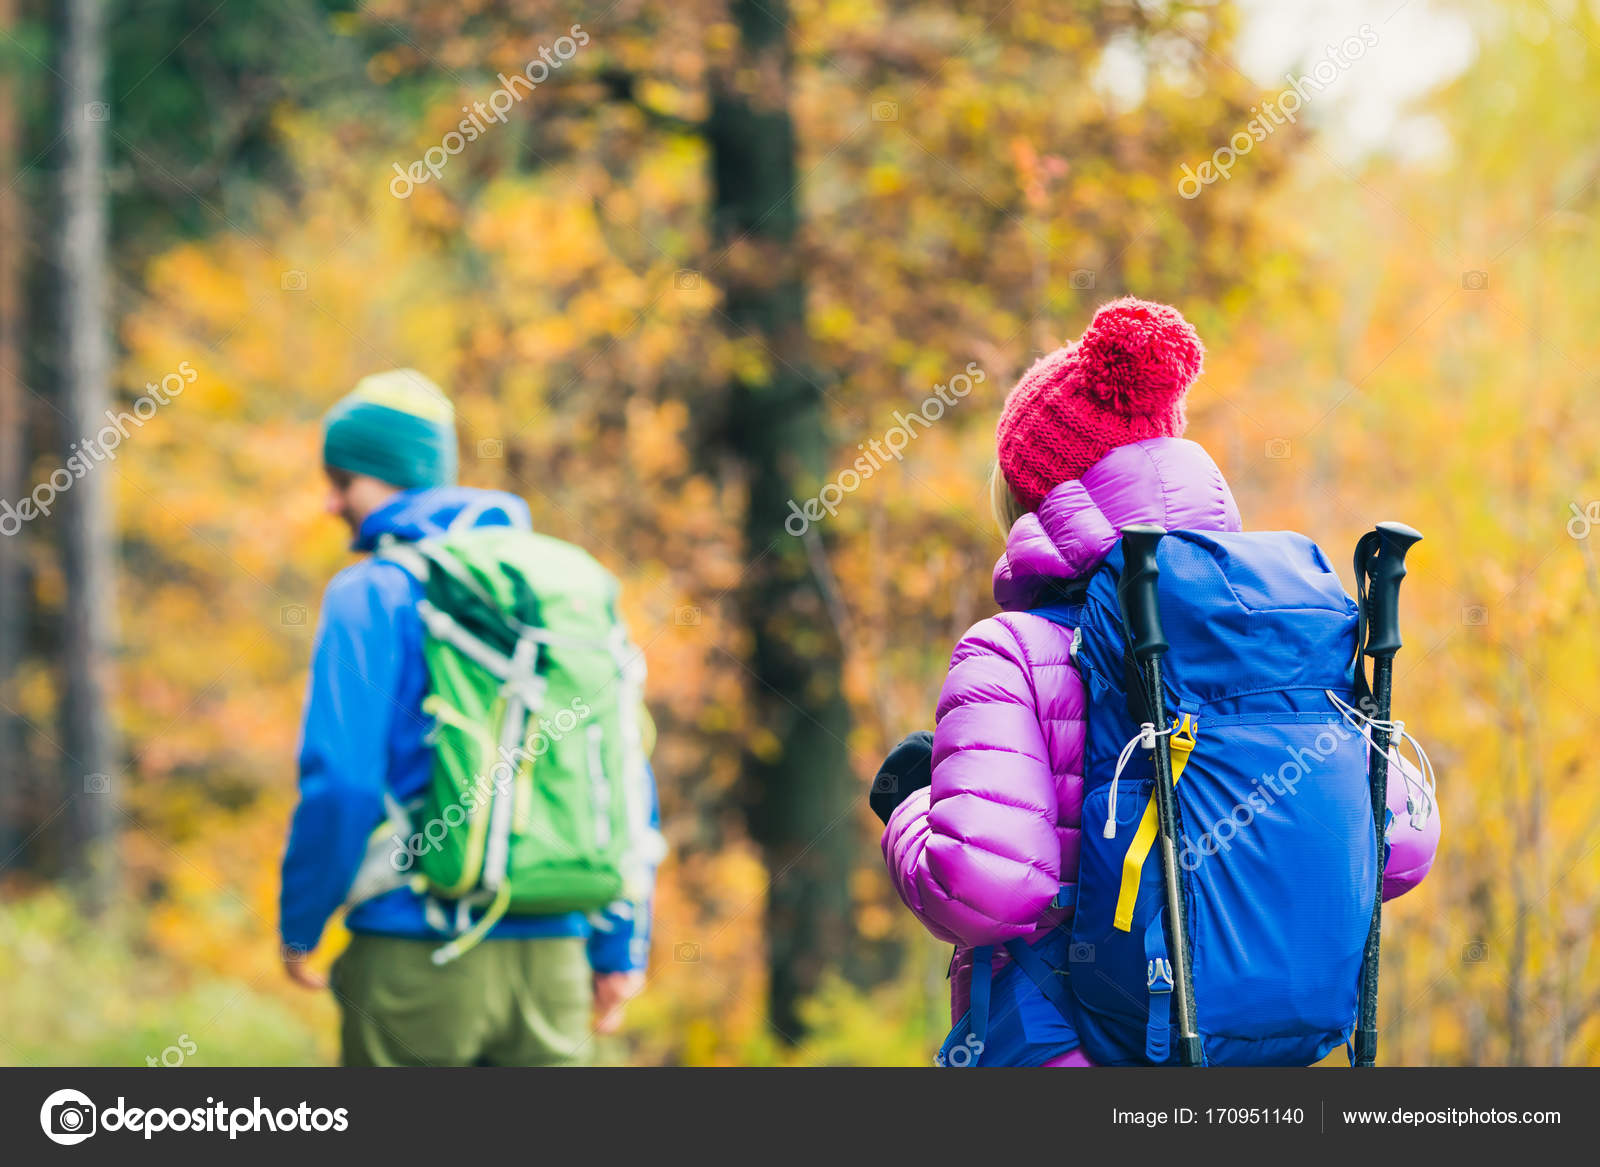 9be7adbbab435e Happy couple hikers trekking in beautiful yellow autumn forest and mountains.  Young people man and woman walking on trek trail with backpacks, healthy ...